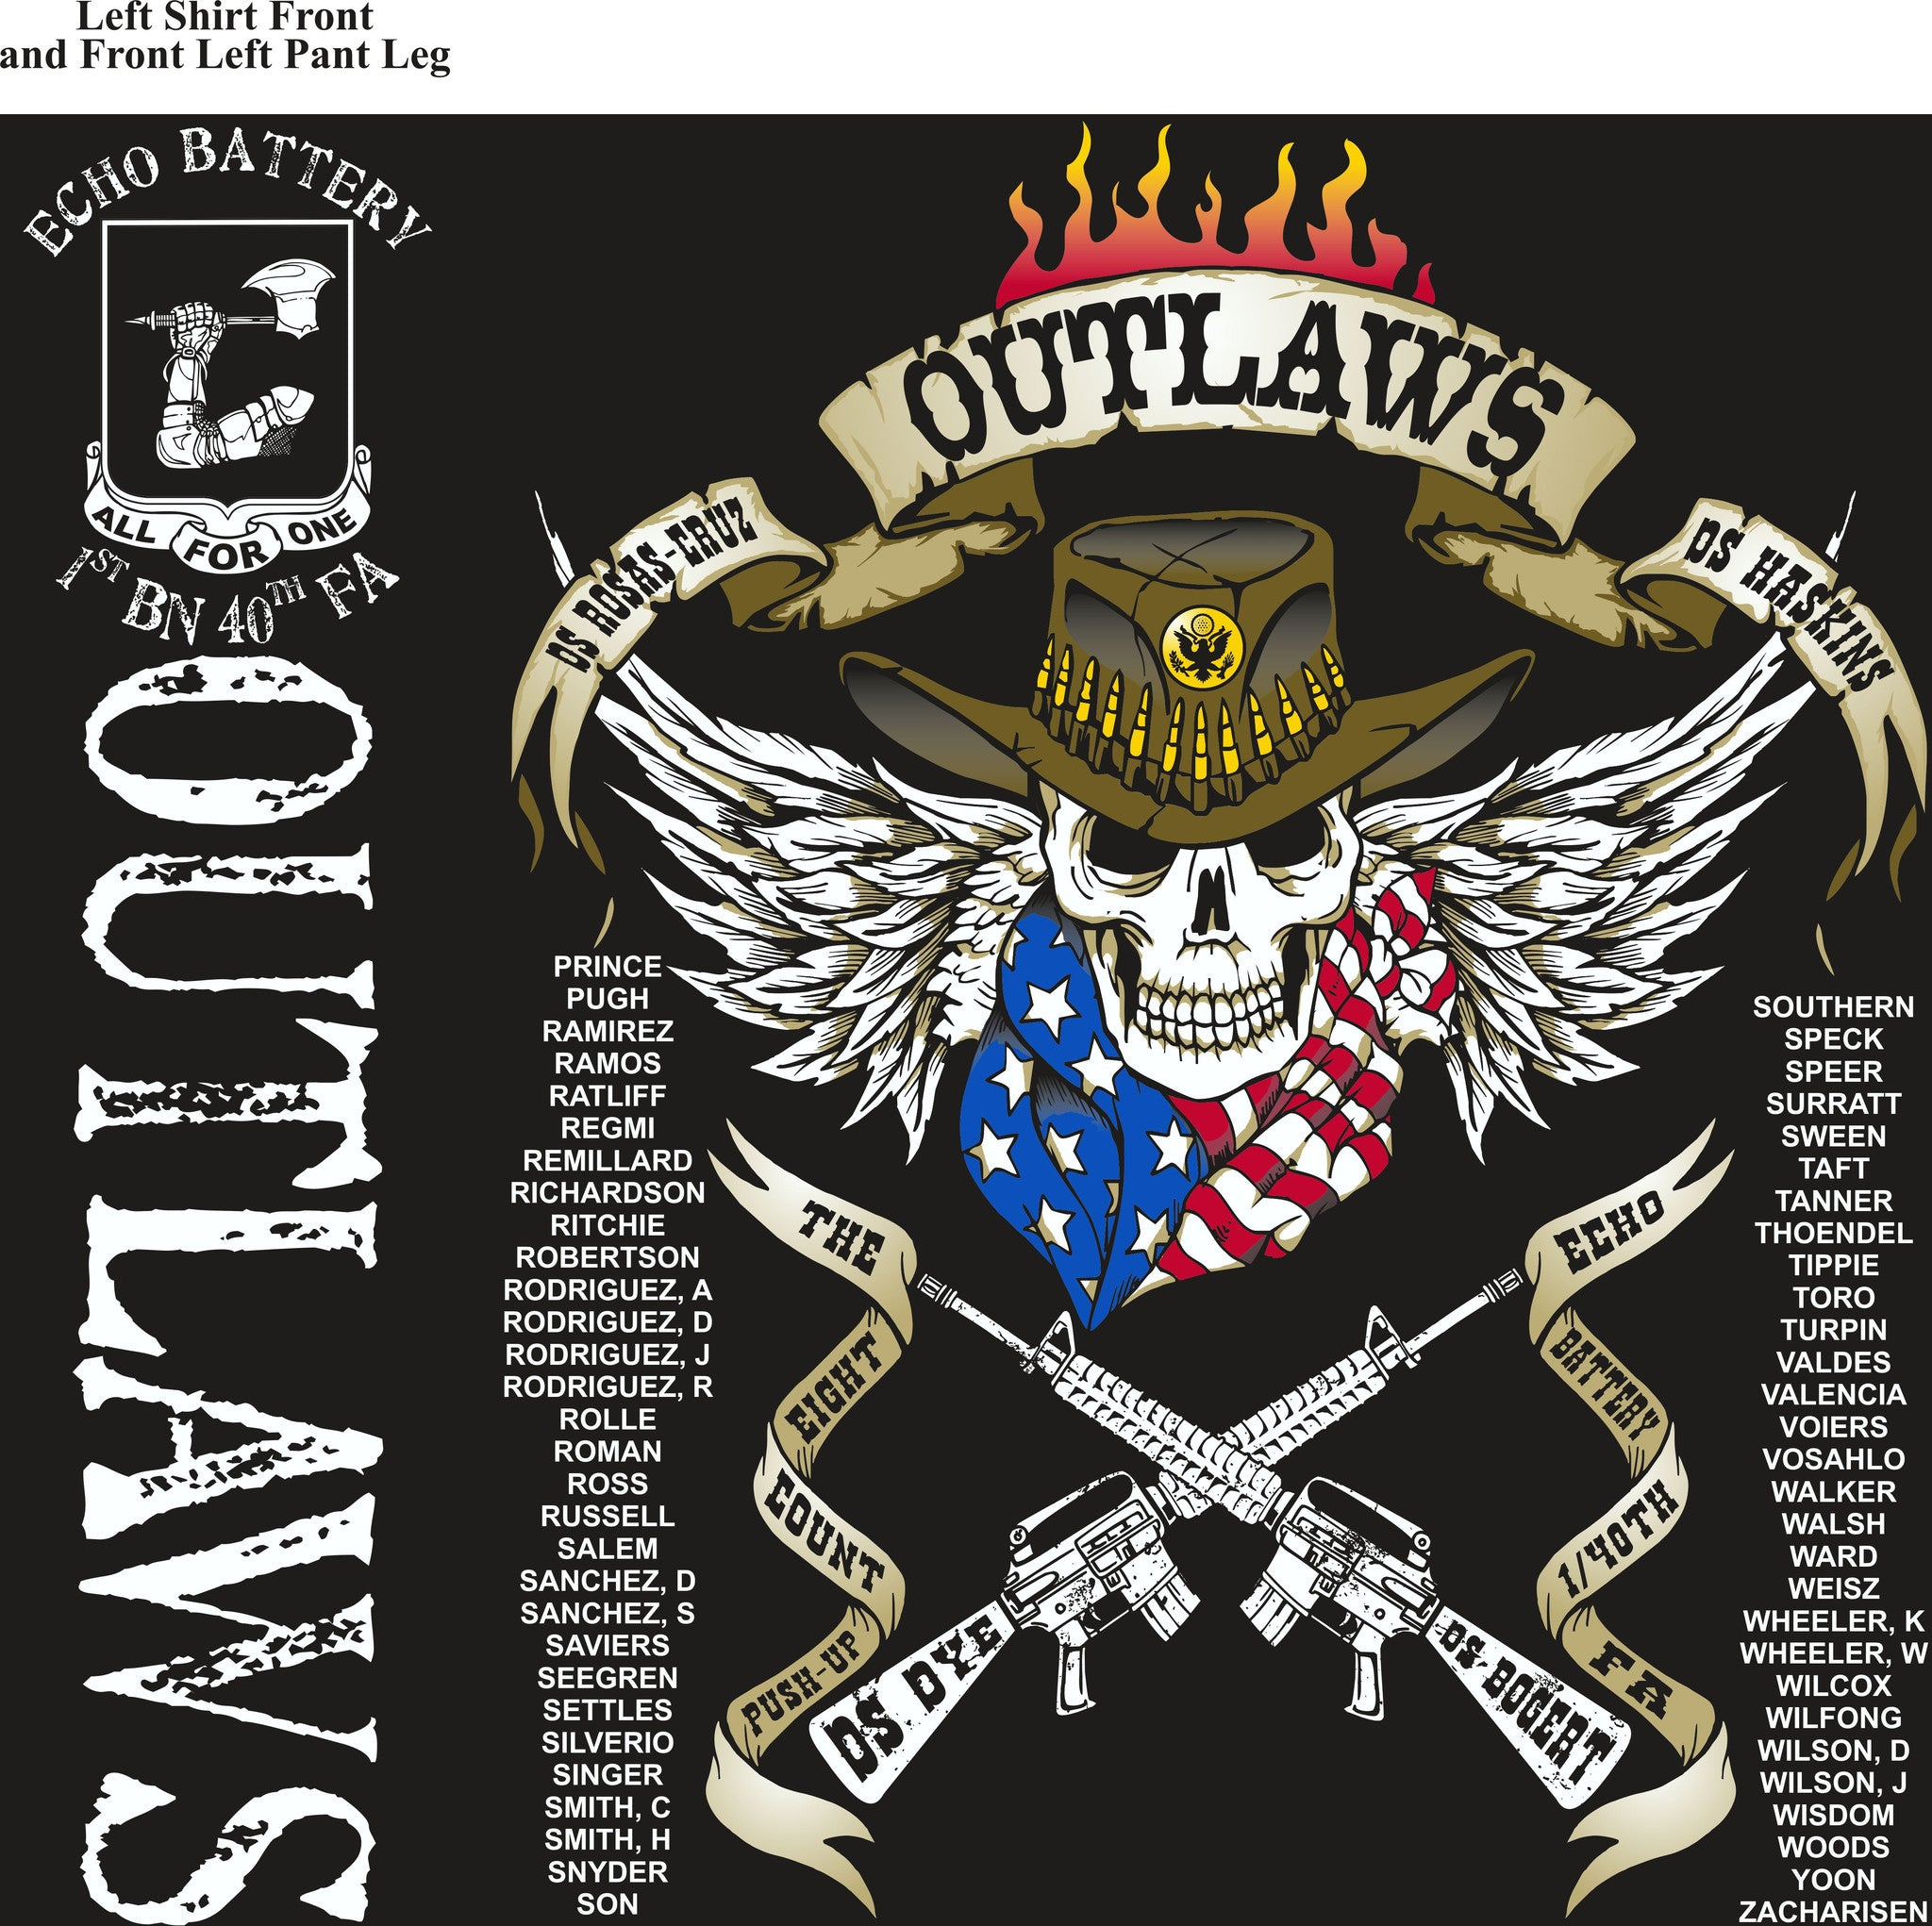 PLATOON SHIRTS (2nd generation print)  ECHO 1st 40th OUTLAWS OCT 2016